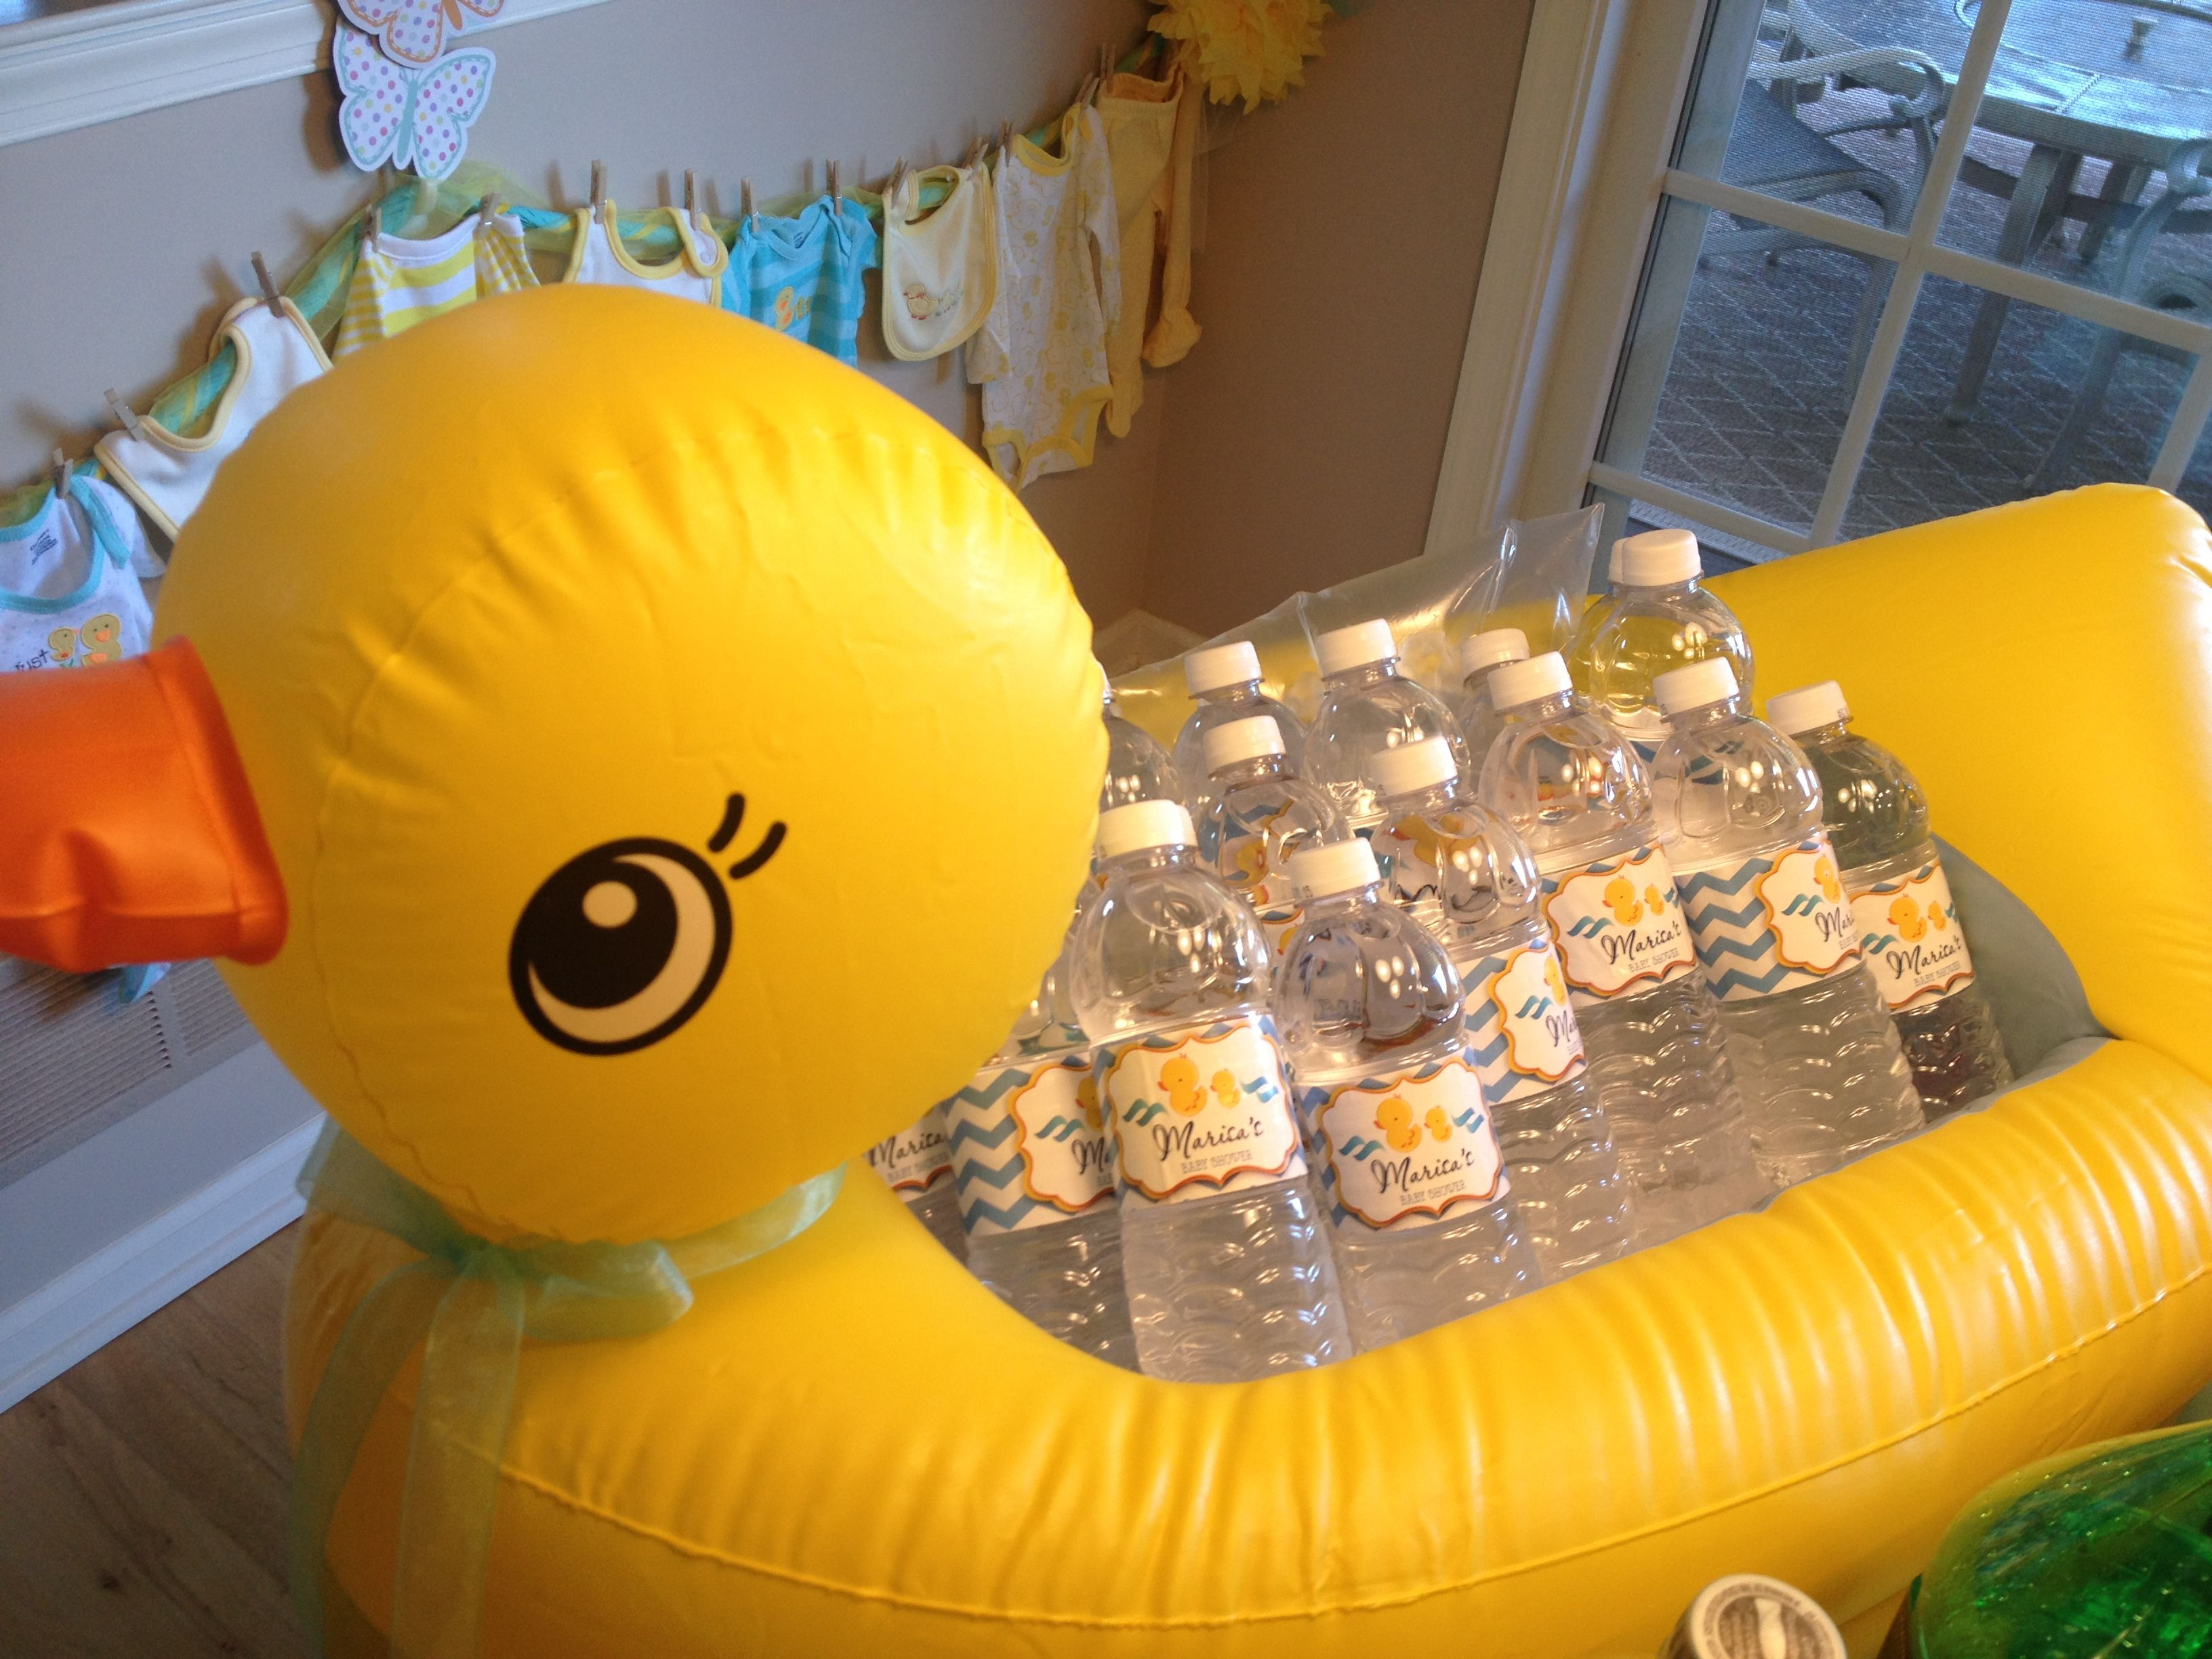 Sister in law s baby shower Aqua & yellow Duck theme Inflatable